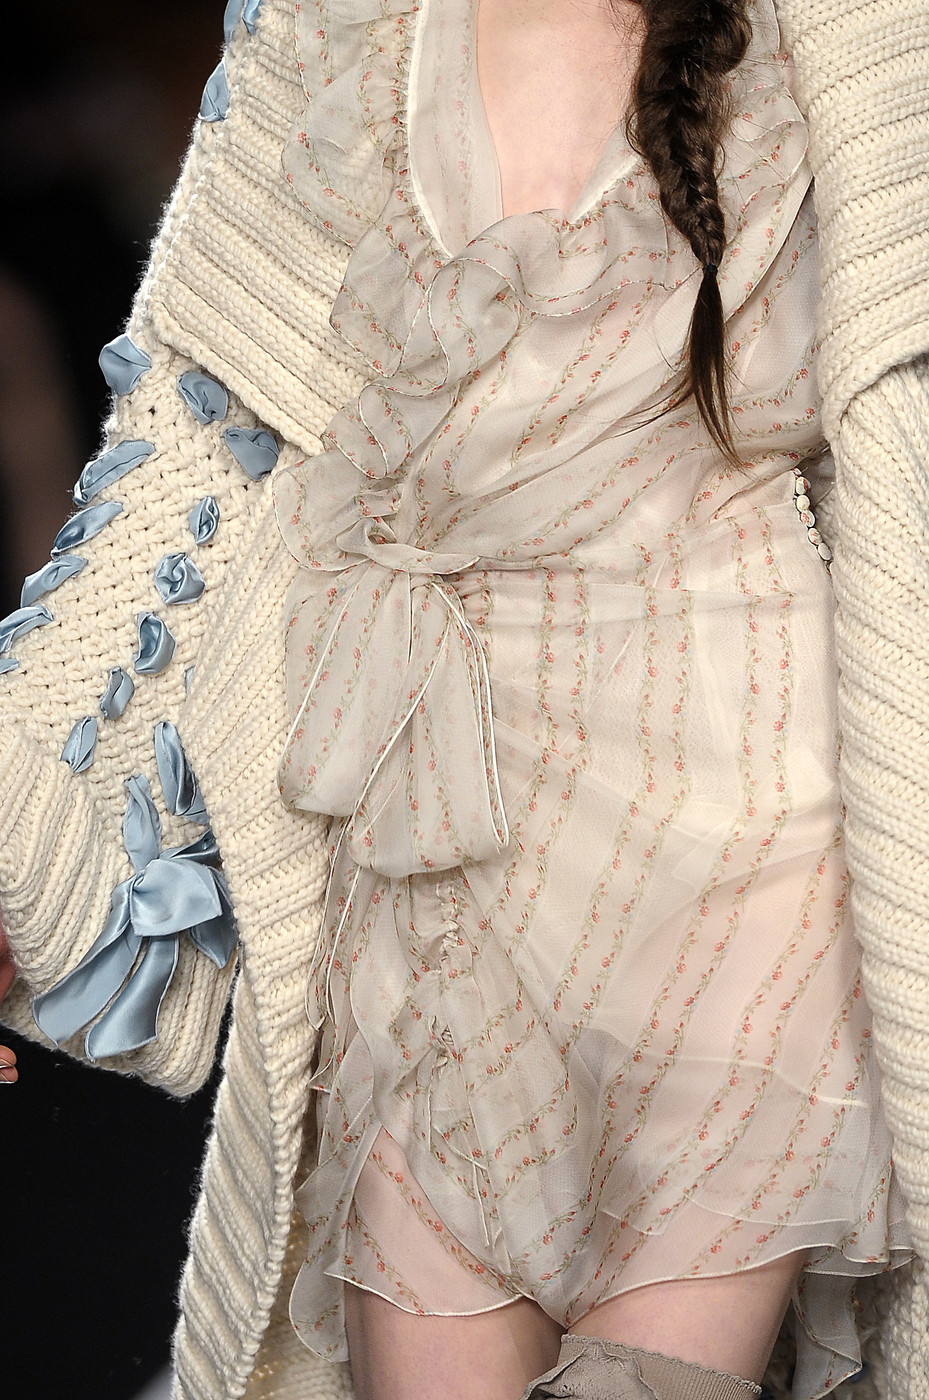 Christian Dior Fall/Winter 2010